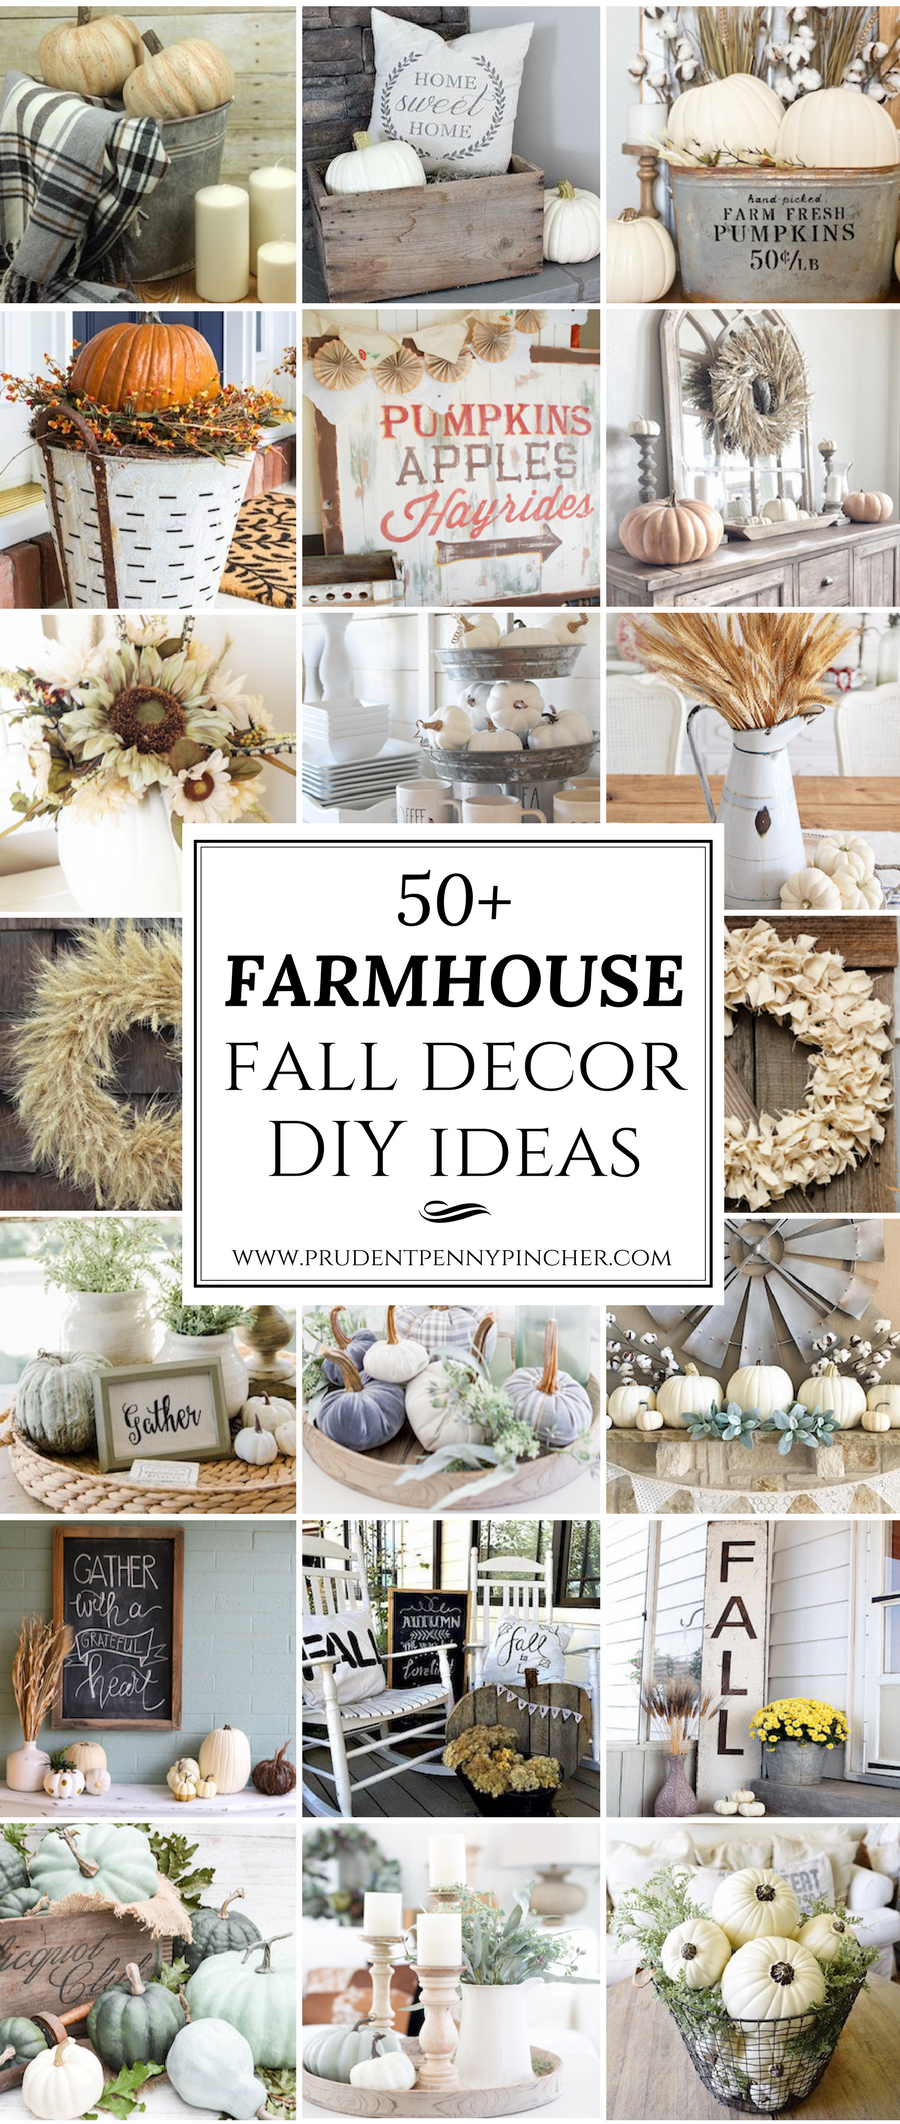 50 Farmhouse Fall Decor Ideas - Prudent Penny Pincher